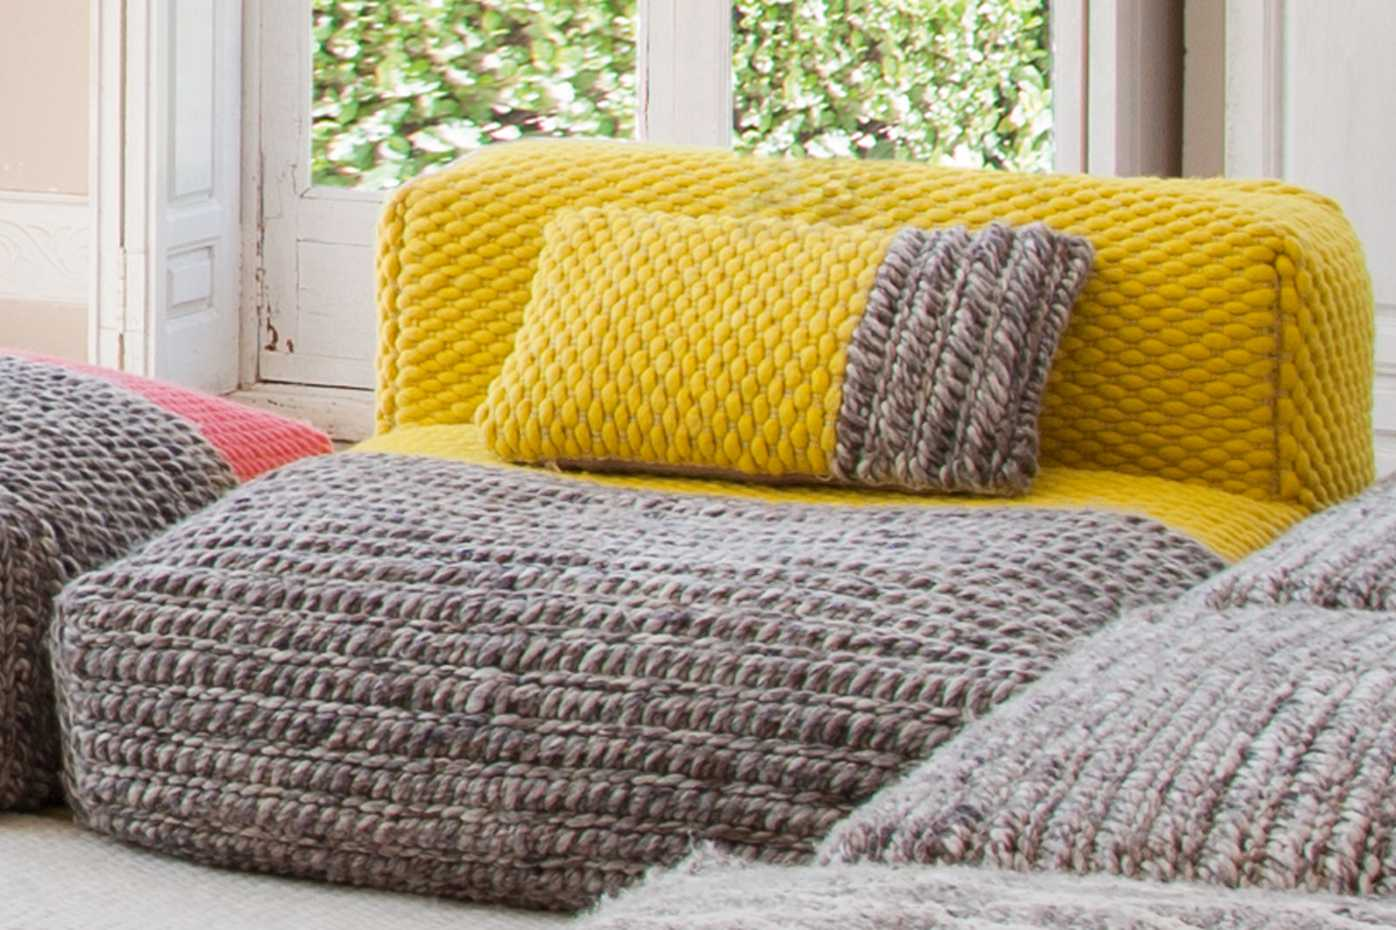 Mangas Space Cushions by Gan Rugs product image 3